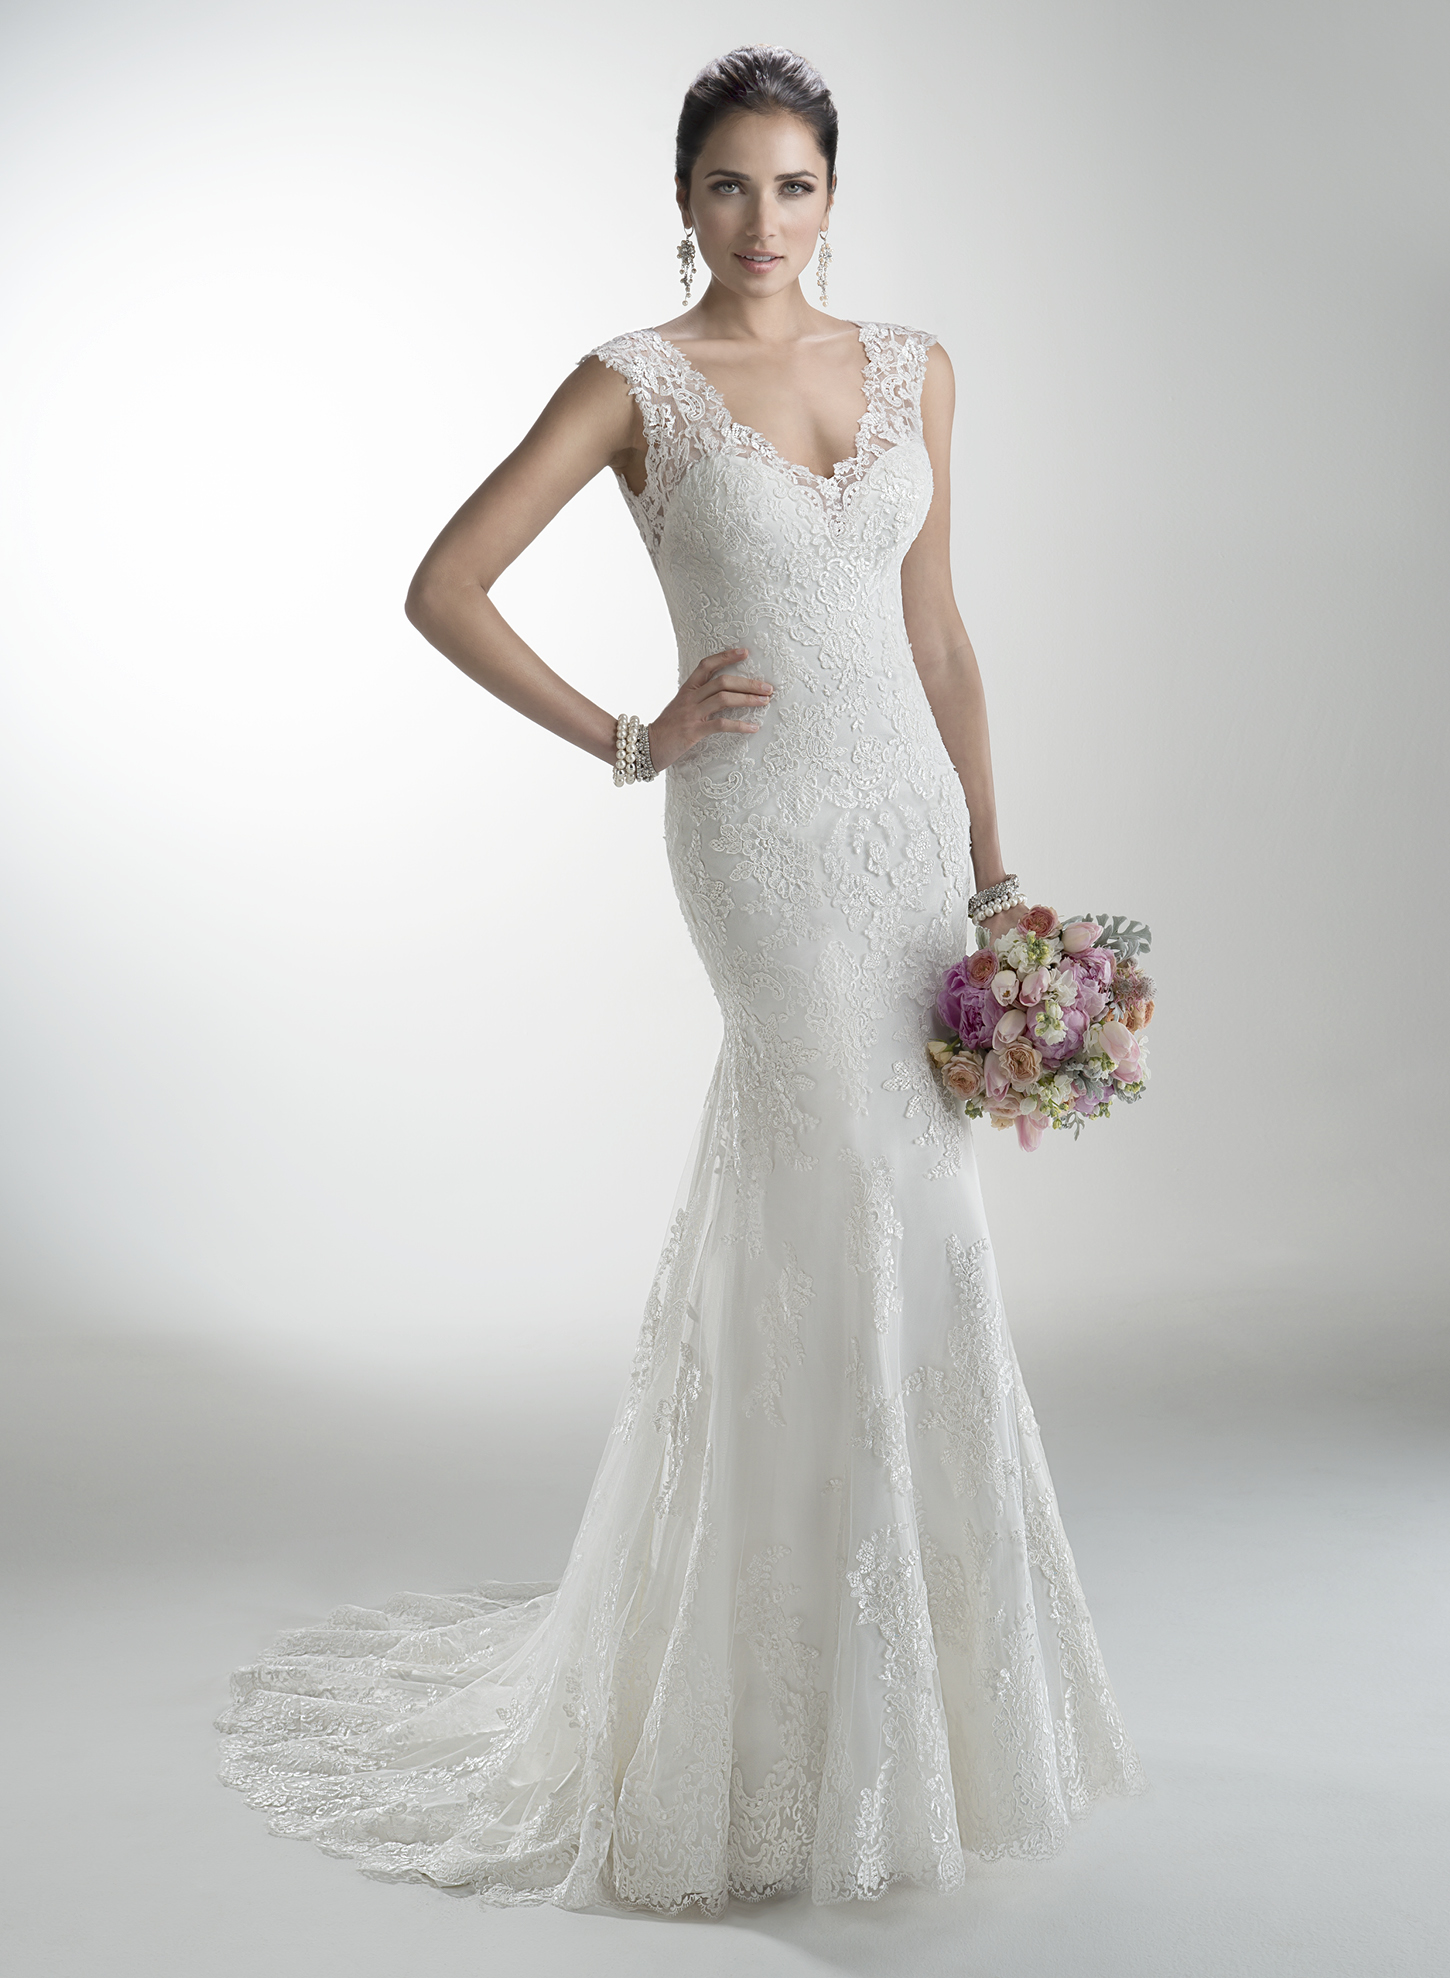 fc4b2eb3163 Fishtail wedding dress cleaning prices by GownClean Ltd. 2014 Maggie  Sottero wedding dresses